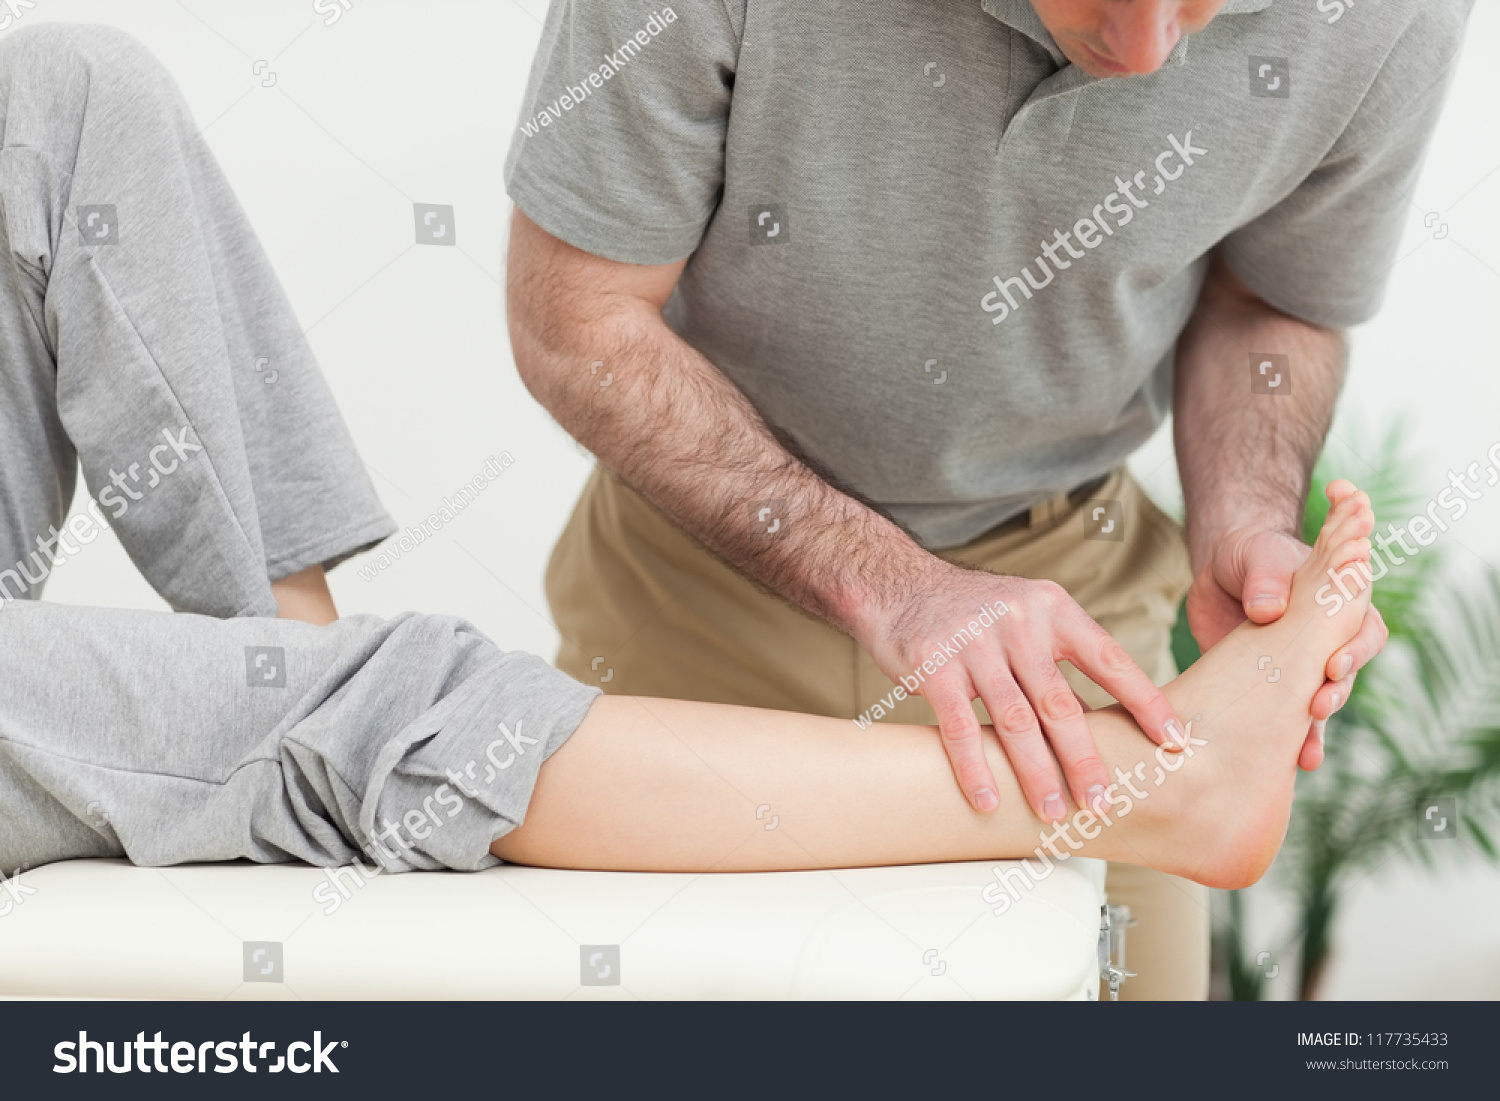 stock-photo-doctor-examining-the-foot-of-a-woman-in-a-room-117735433.jpg